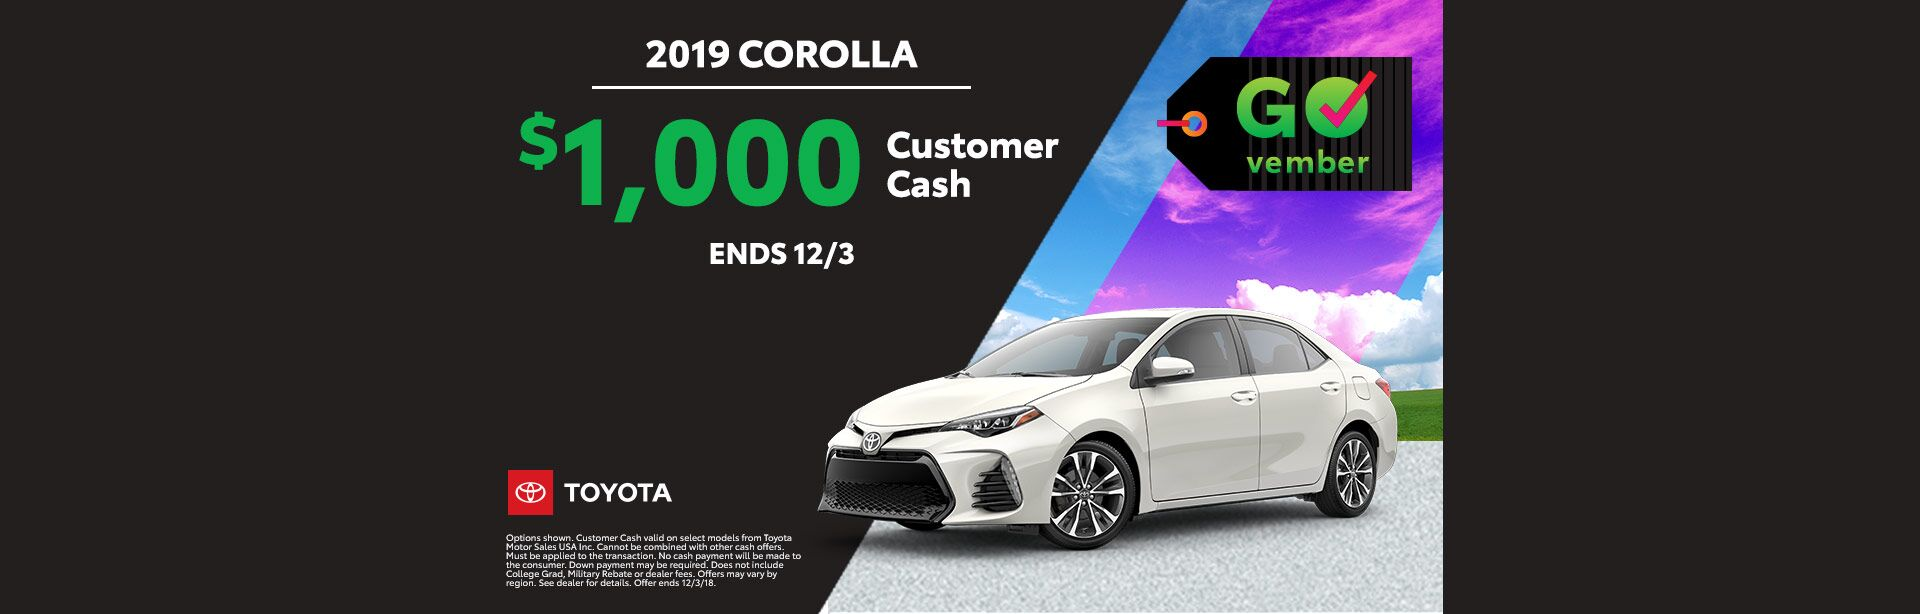 GOvember Corolla Nov 2018